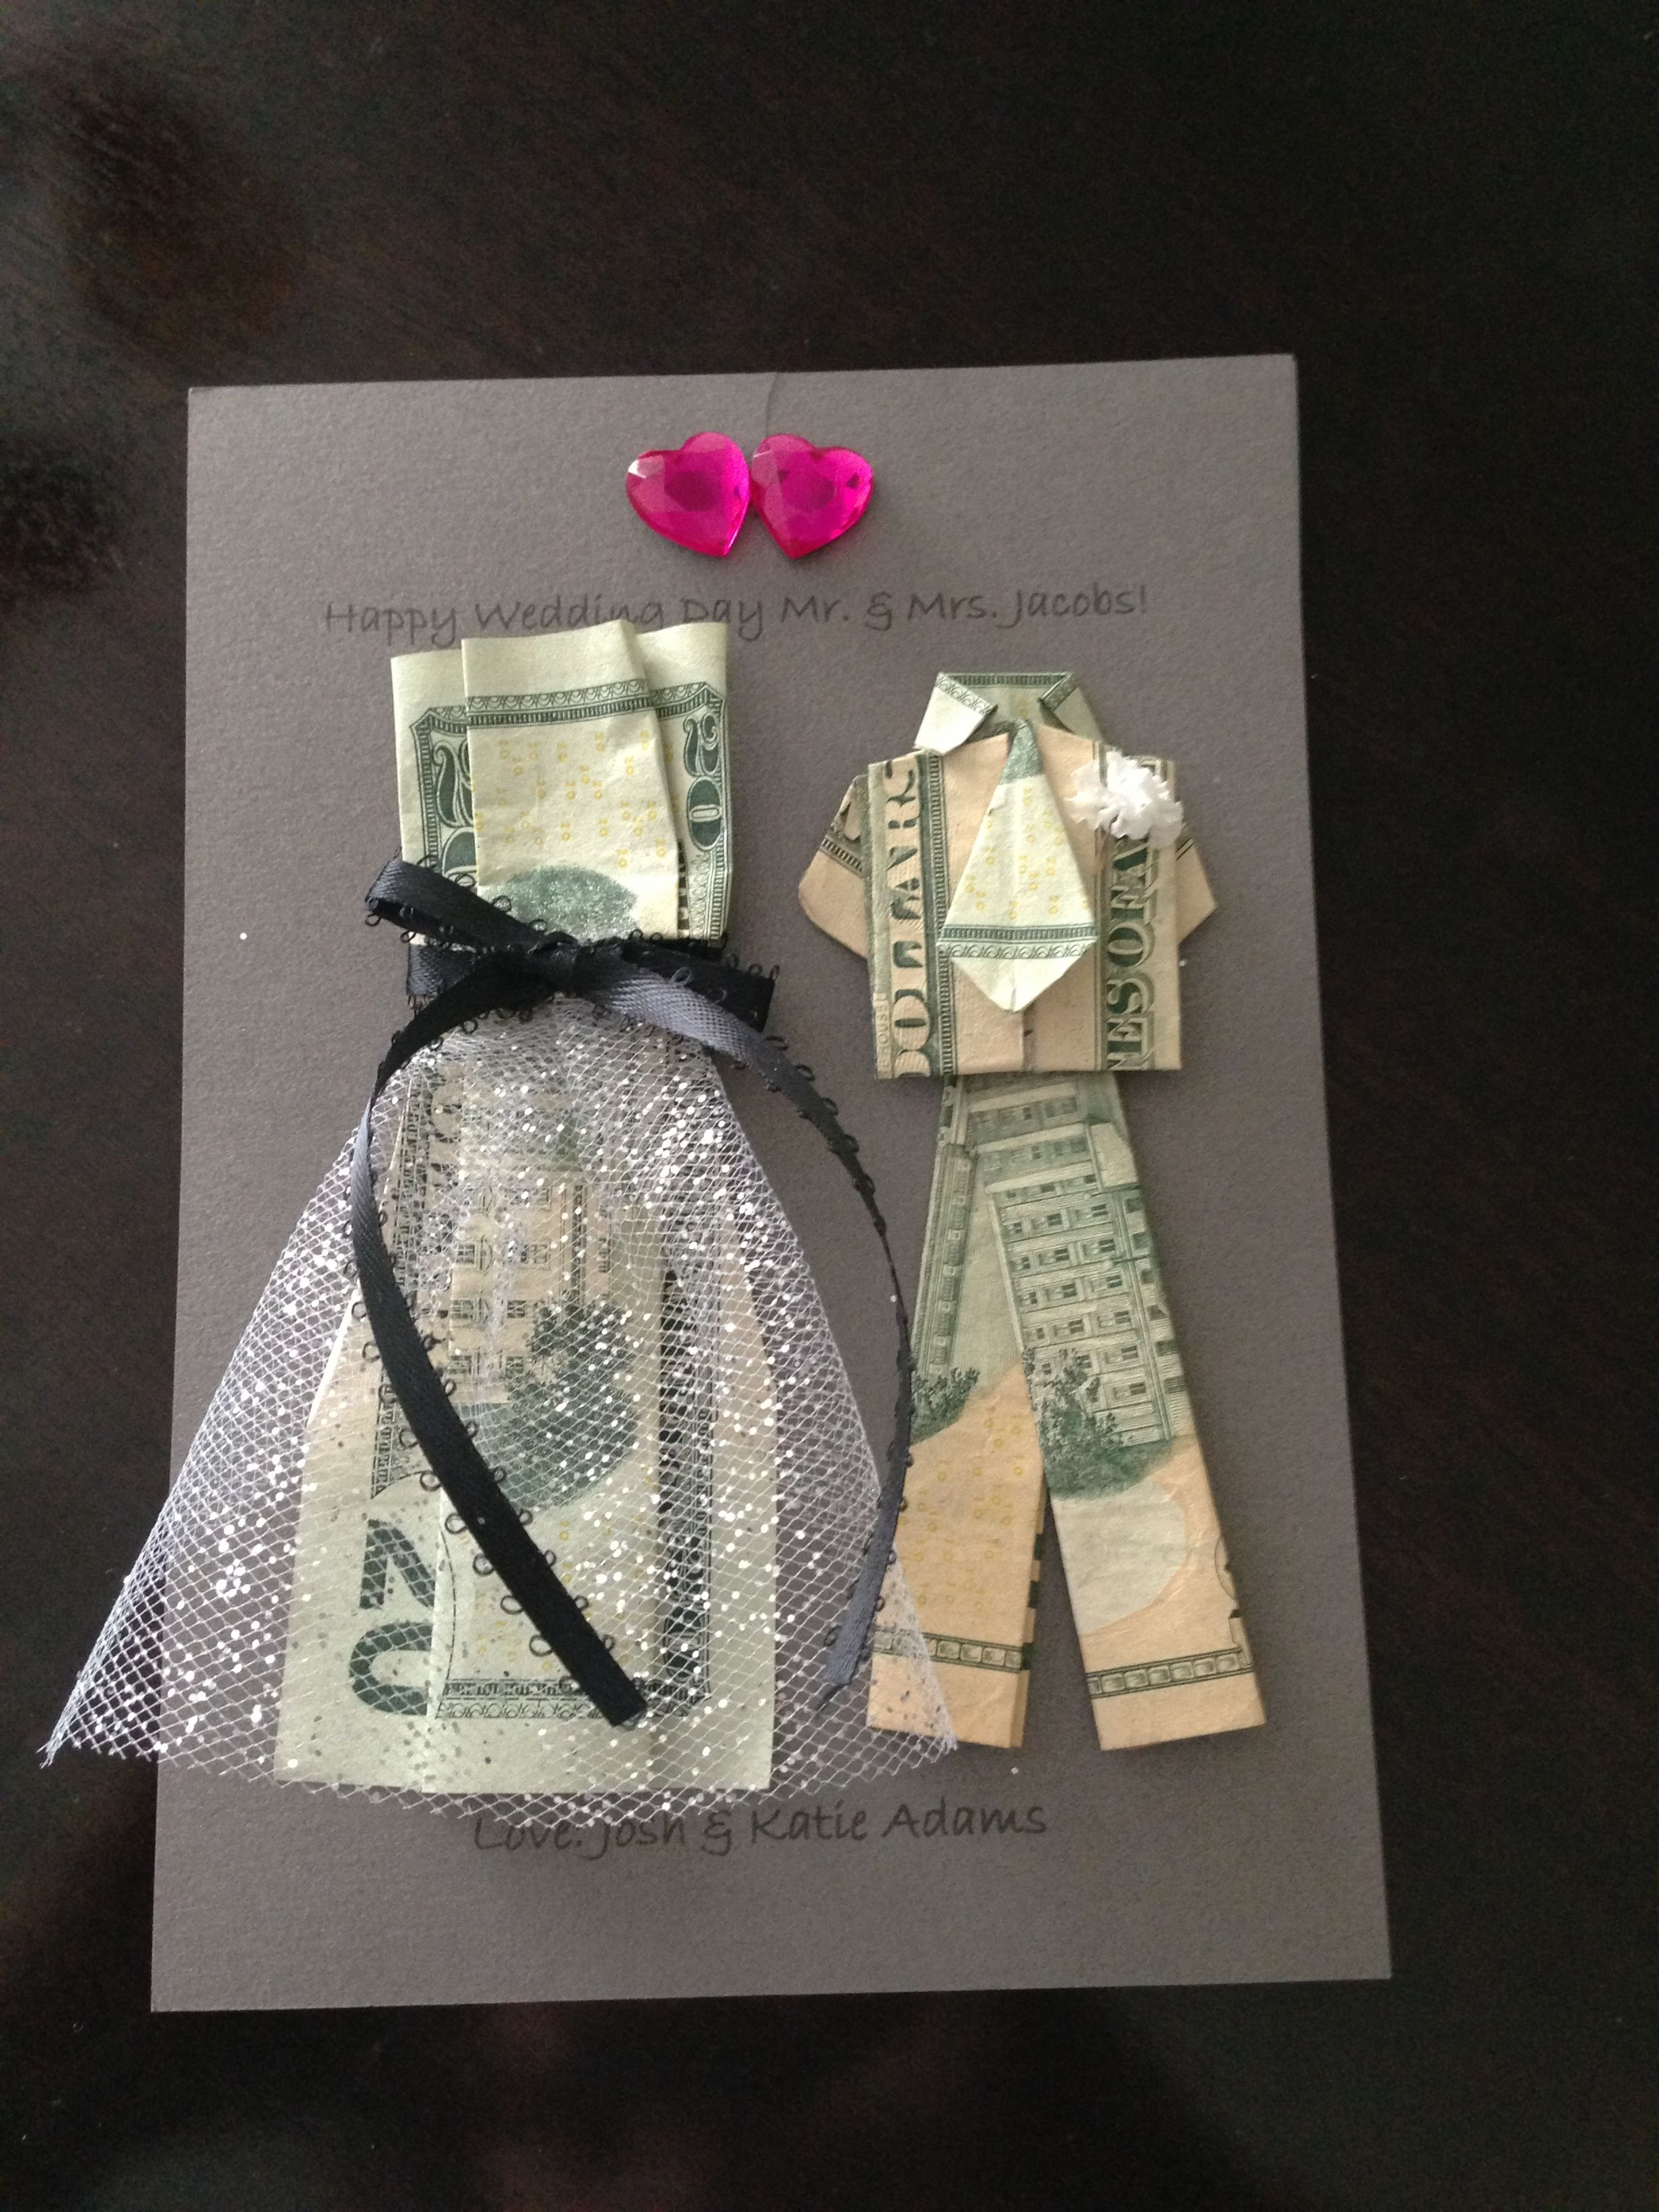 Best ideas about Pinterest Wedding Gift Ideas . Save or Pin Wedding Money Gifts on Pinterest Now.